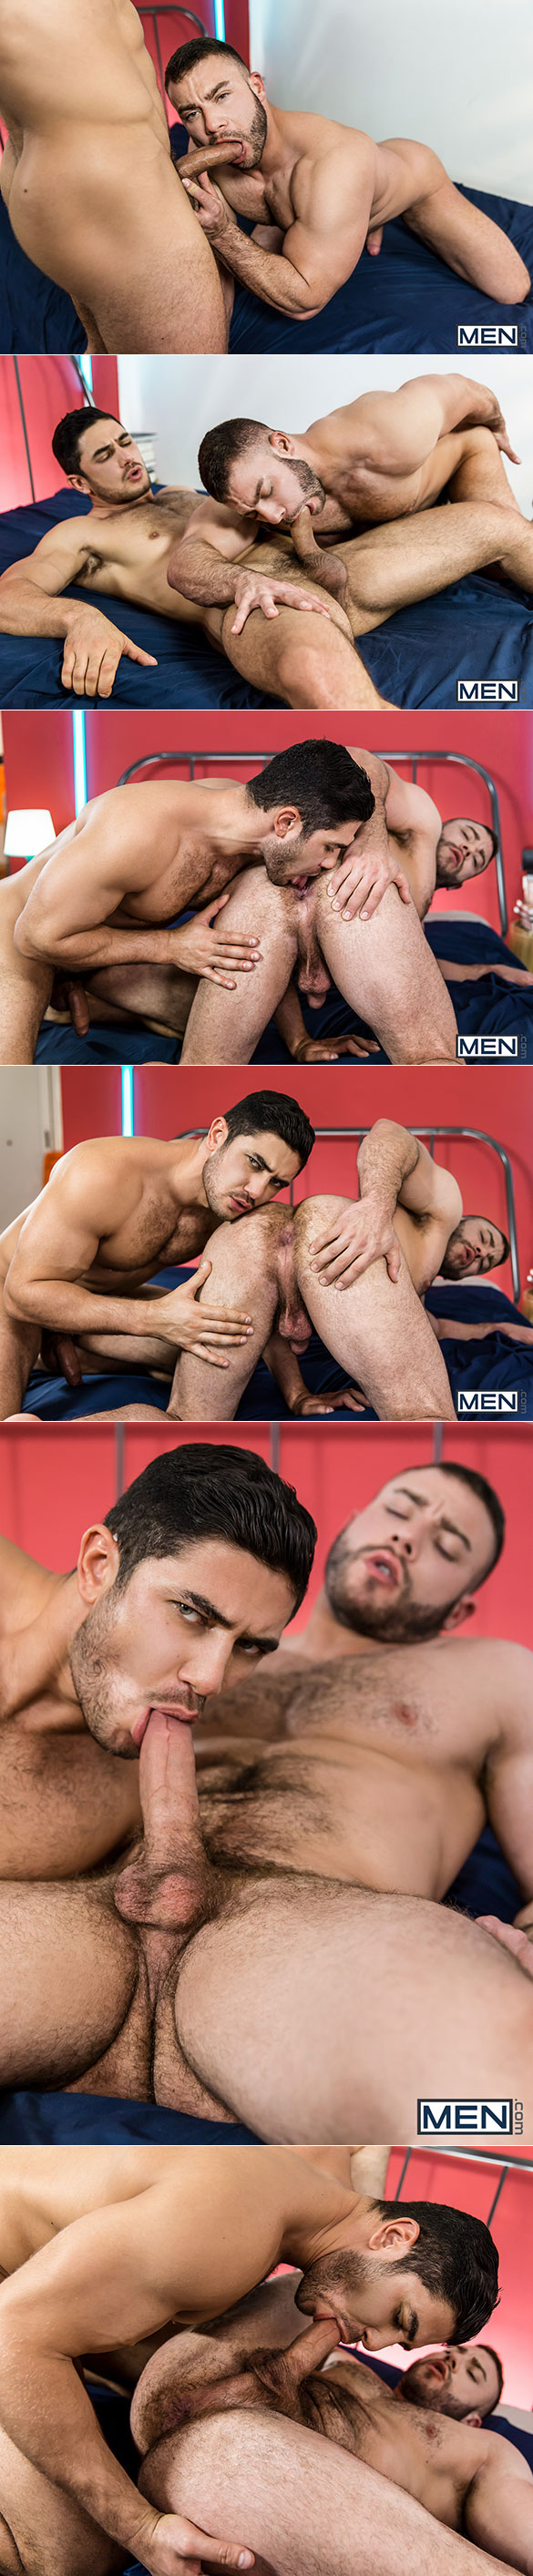 "Men.com: Dato Foland fucks Diego Reyes in ""Hall Pass, Part 3"""